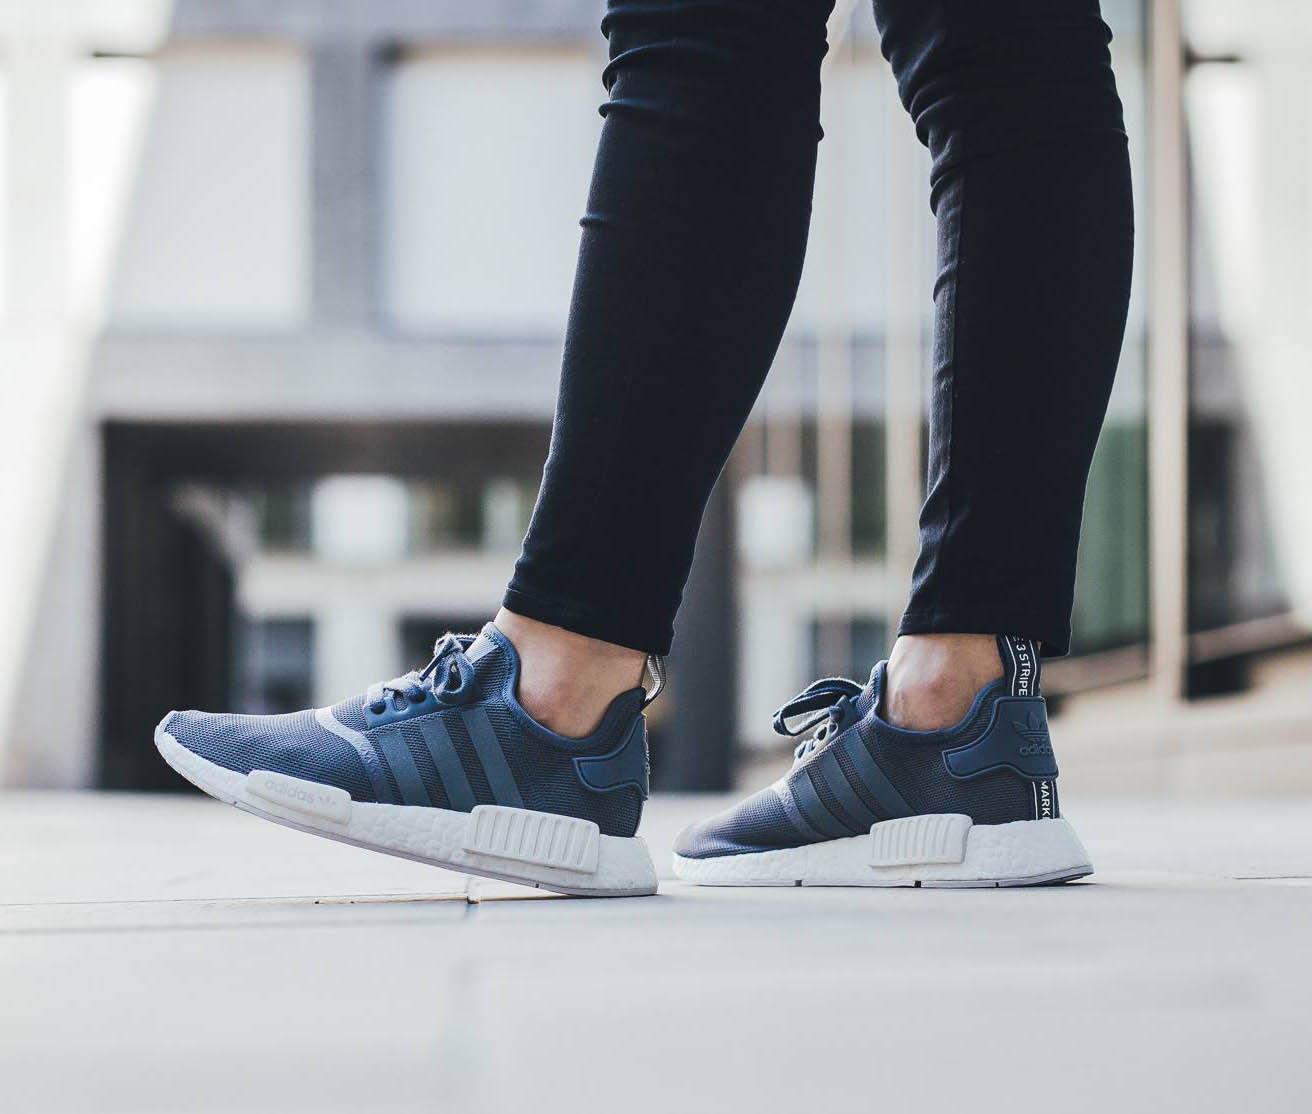 Adidas NMD R1 Tec Ink Women's